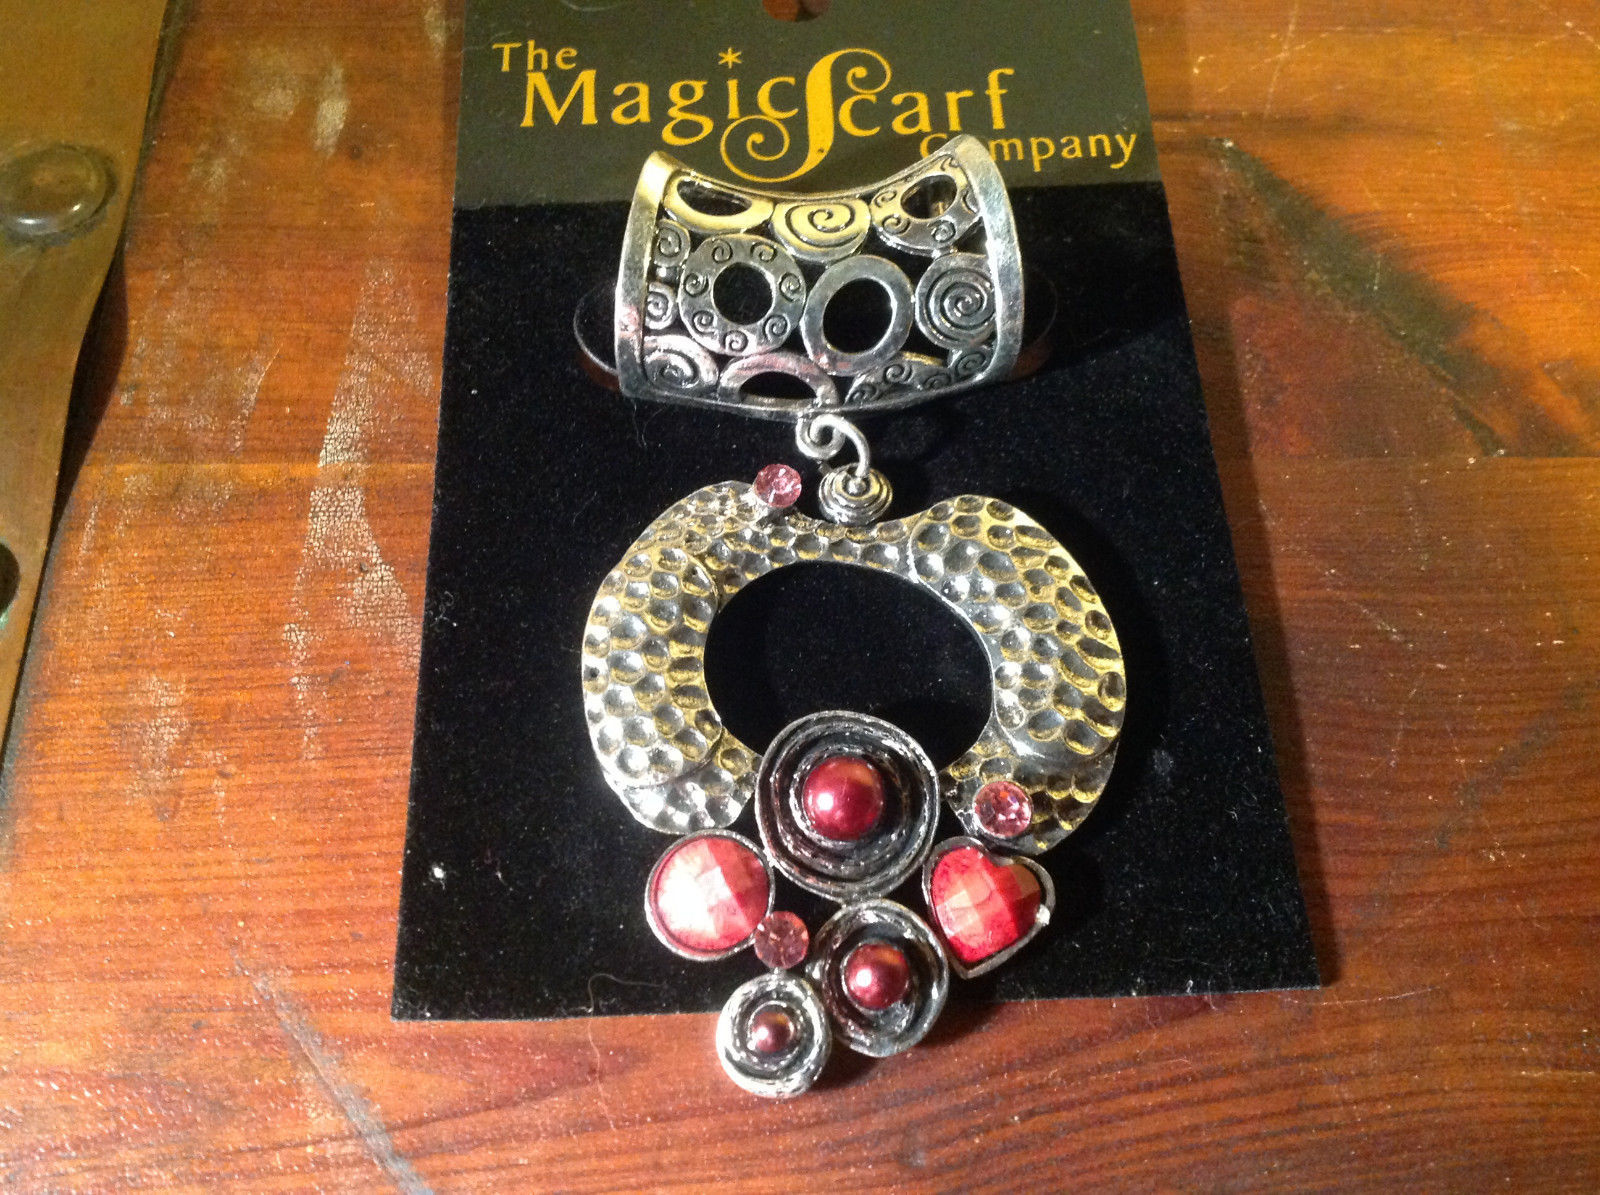 Striking Red Balls Crystals and Stones Silver Tone Scarf Pendant by Magic Scarf